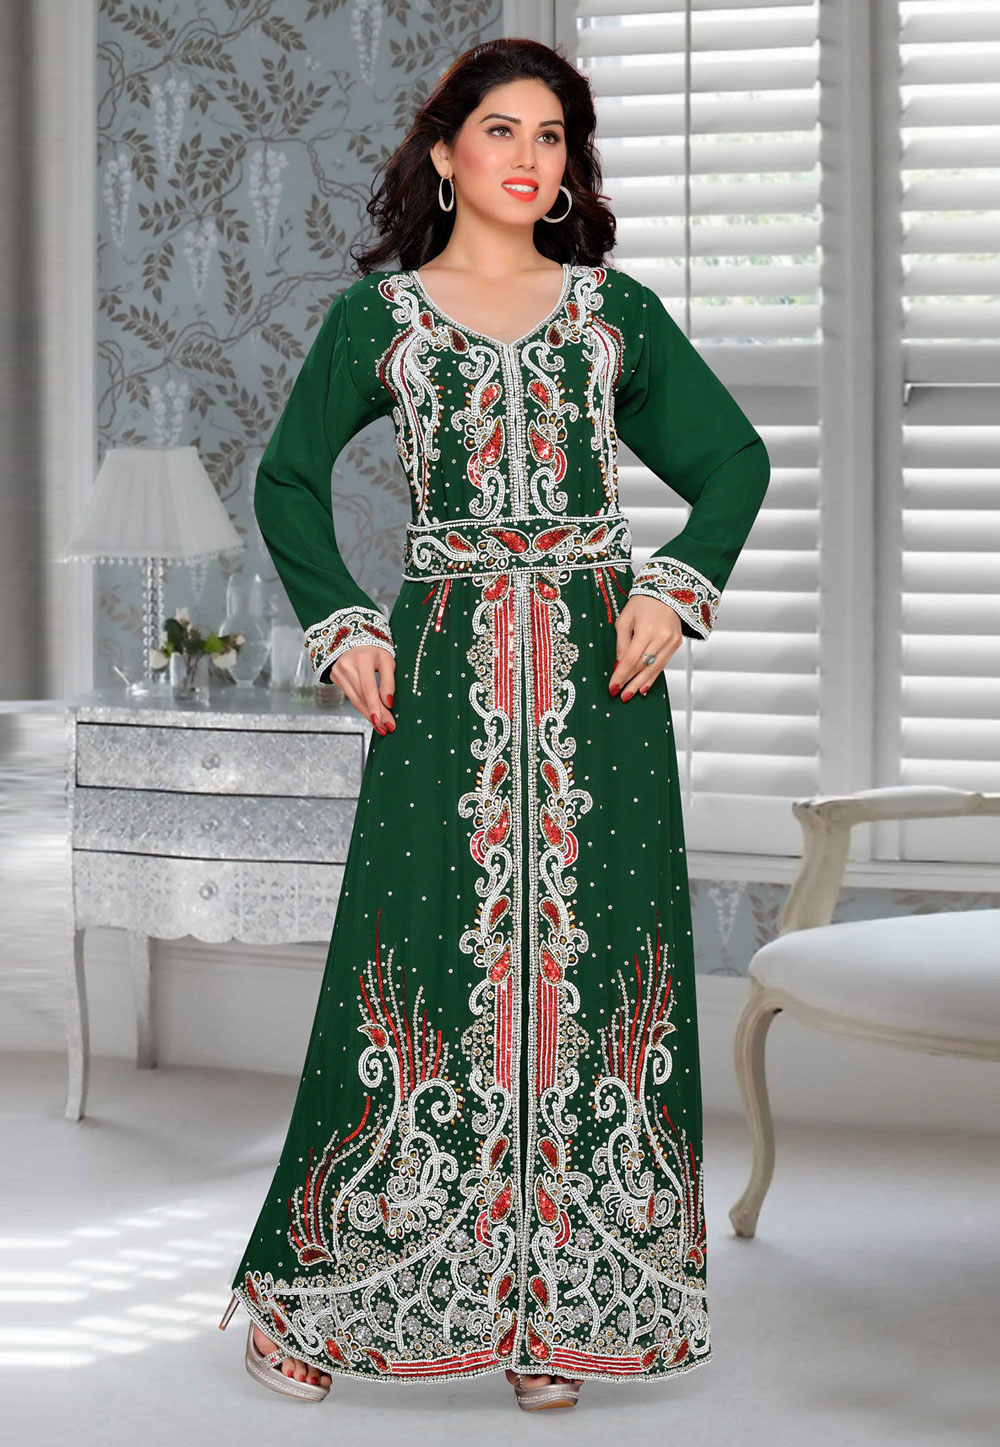 Green Faux Georgette Embroidered Readymade Kaftan 194901